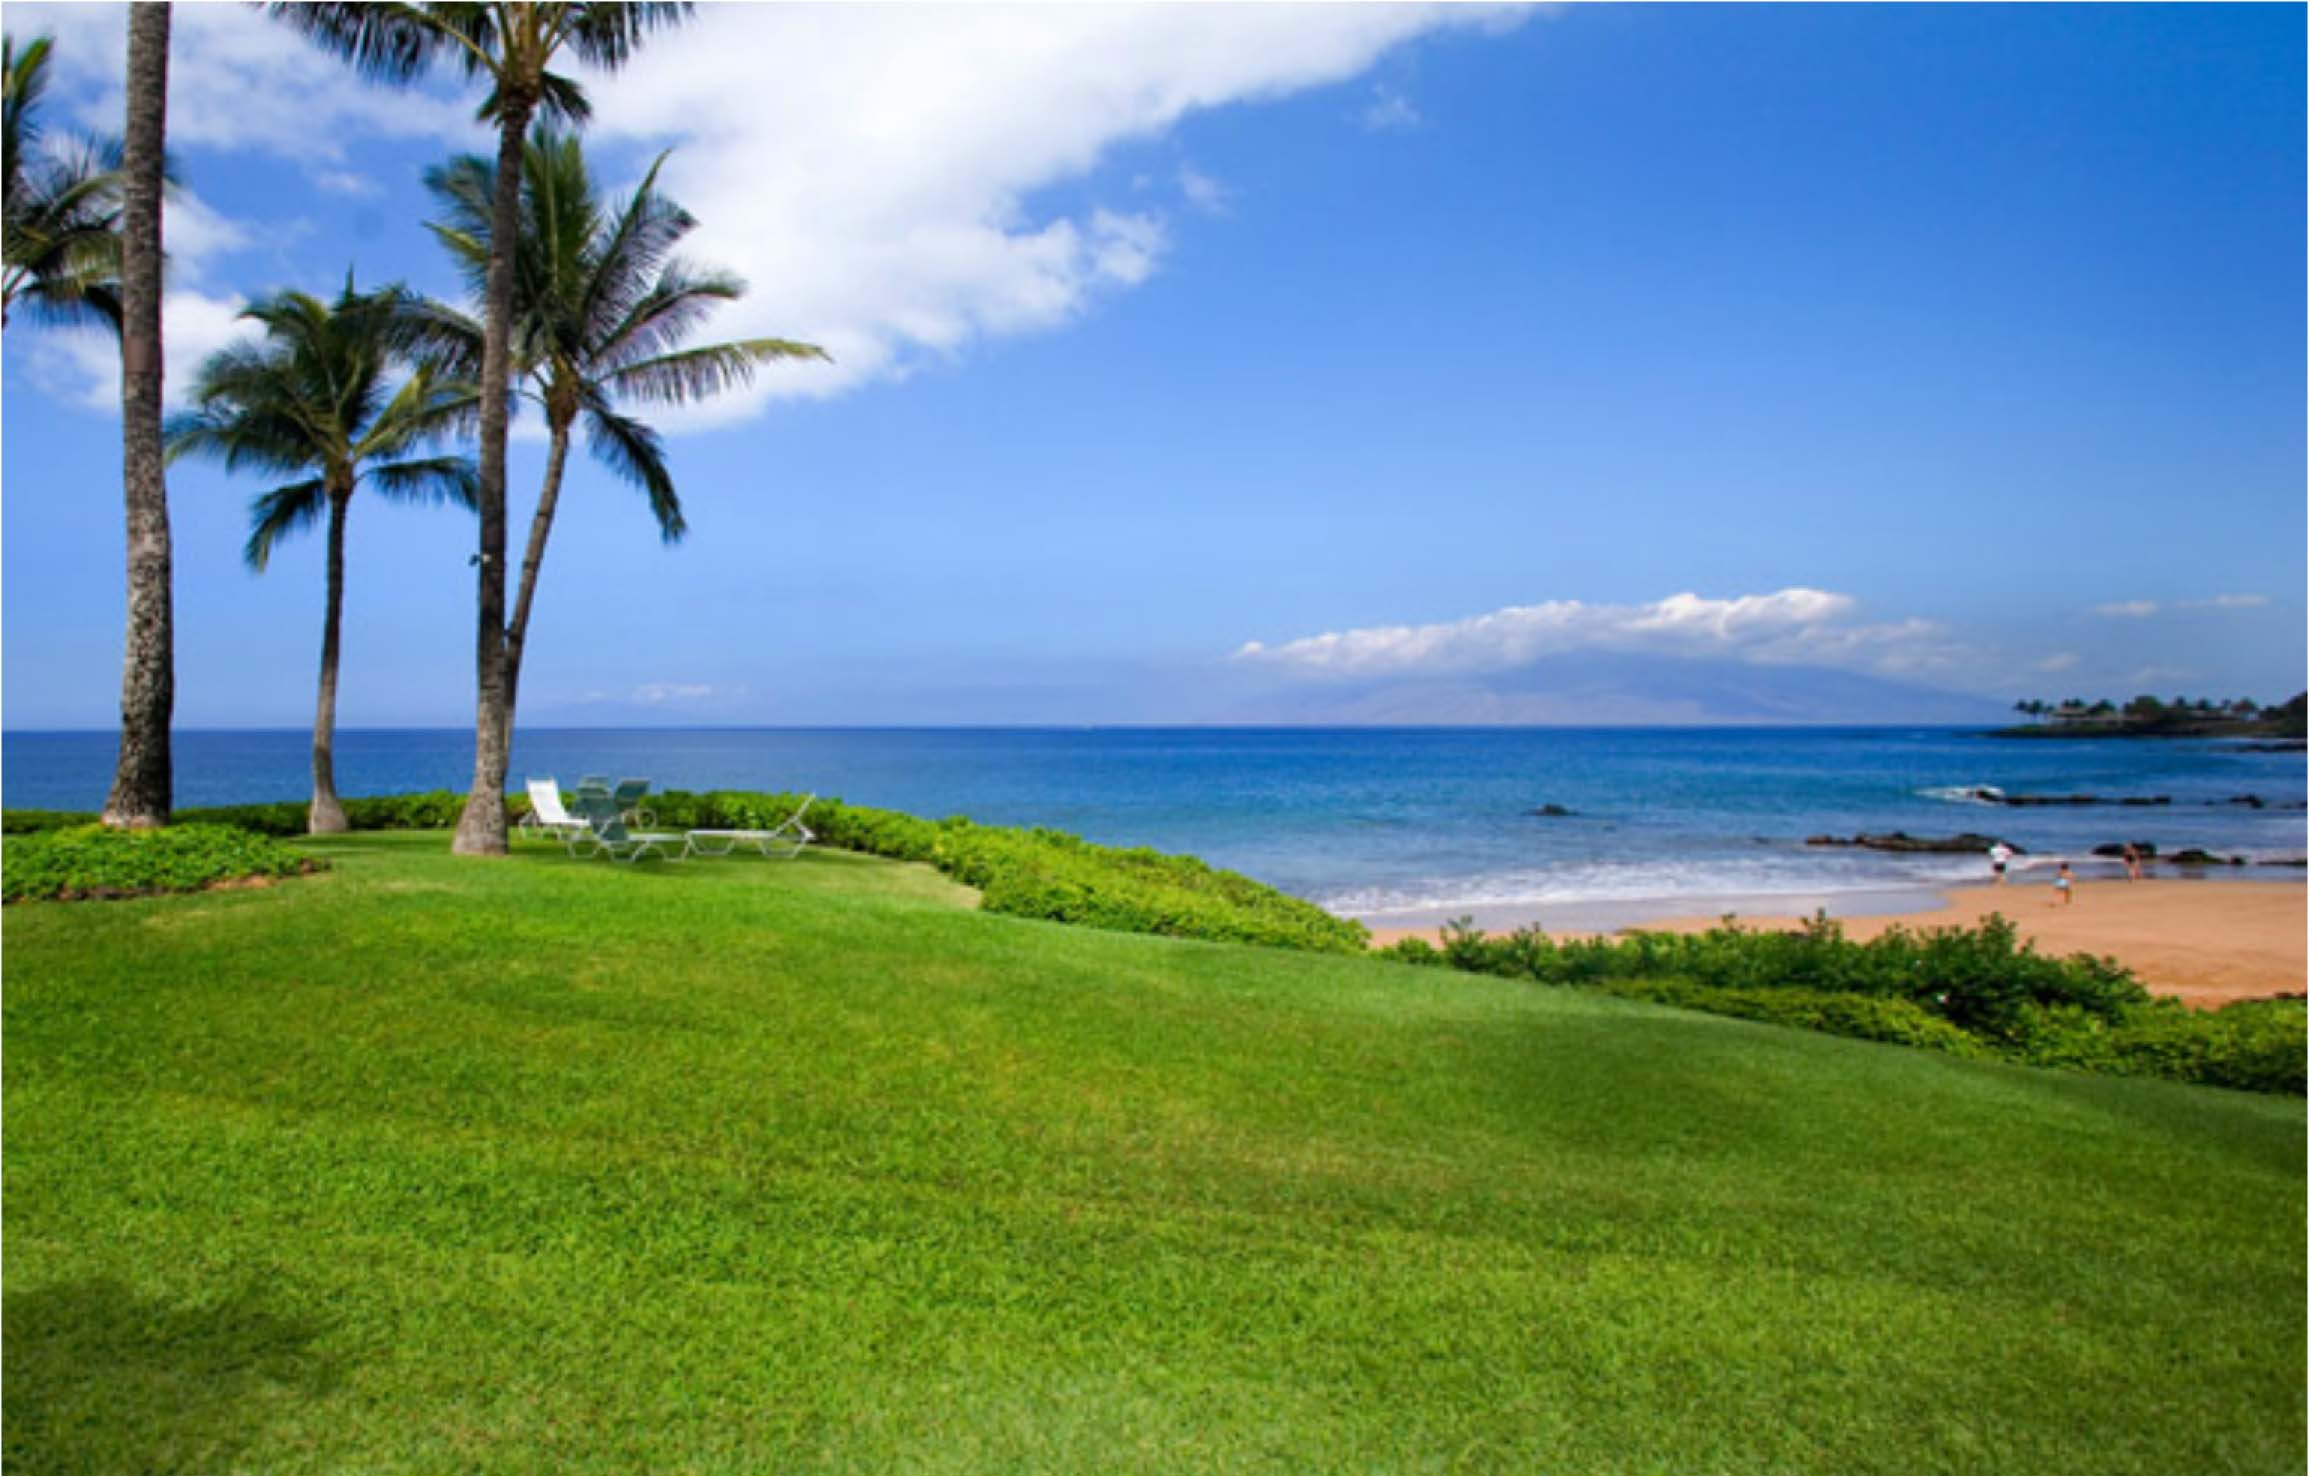 Oceanfront view and lawn